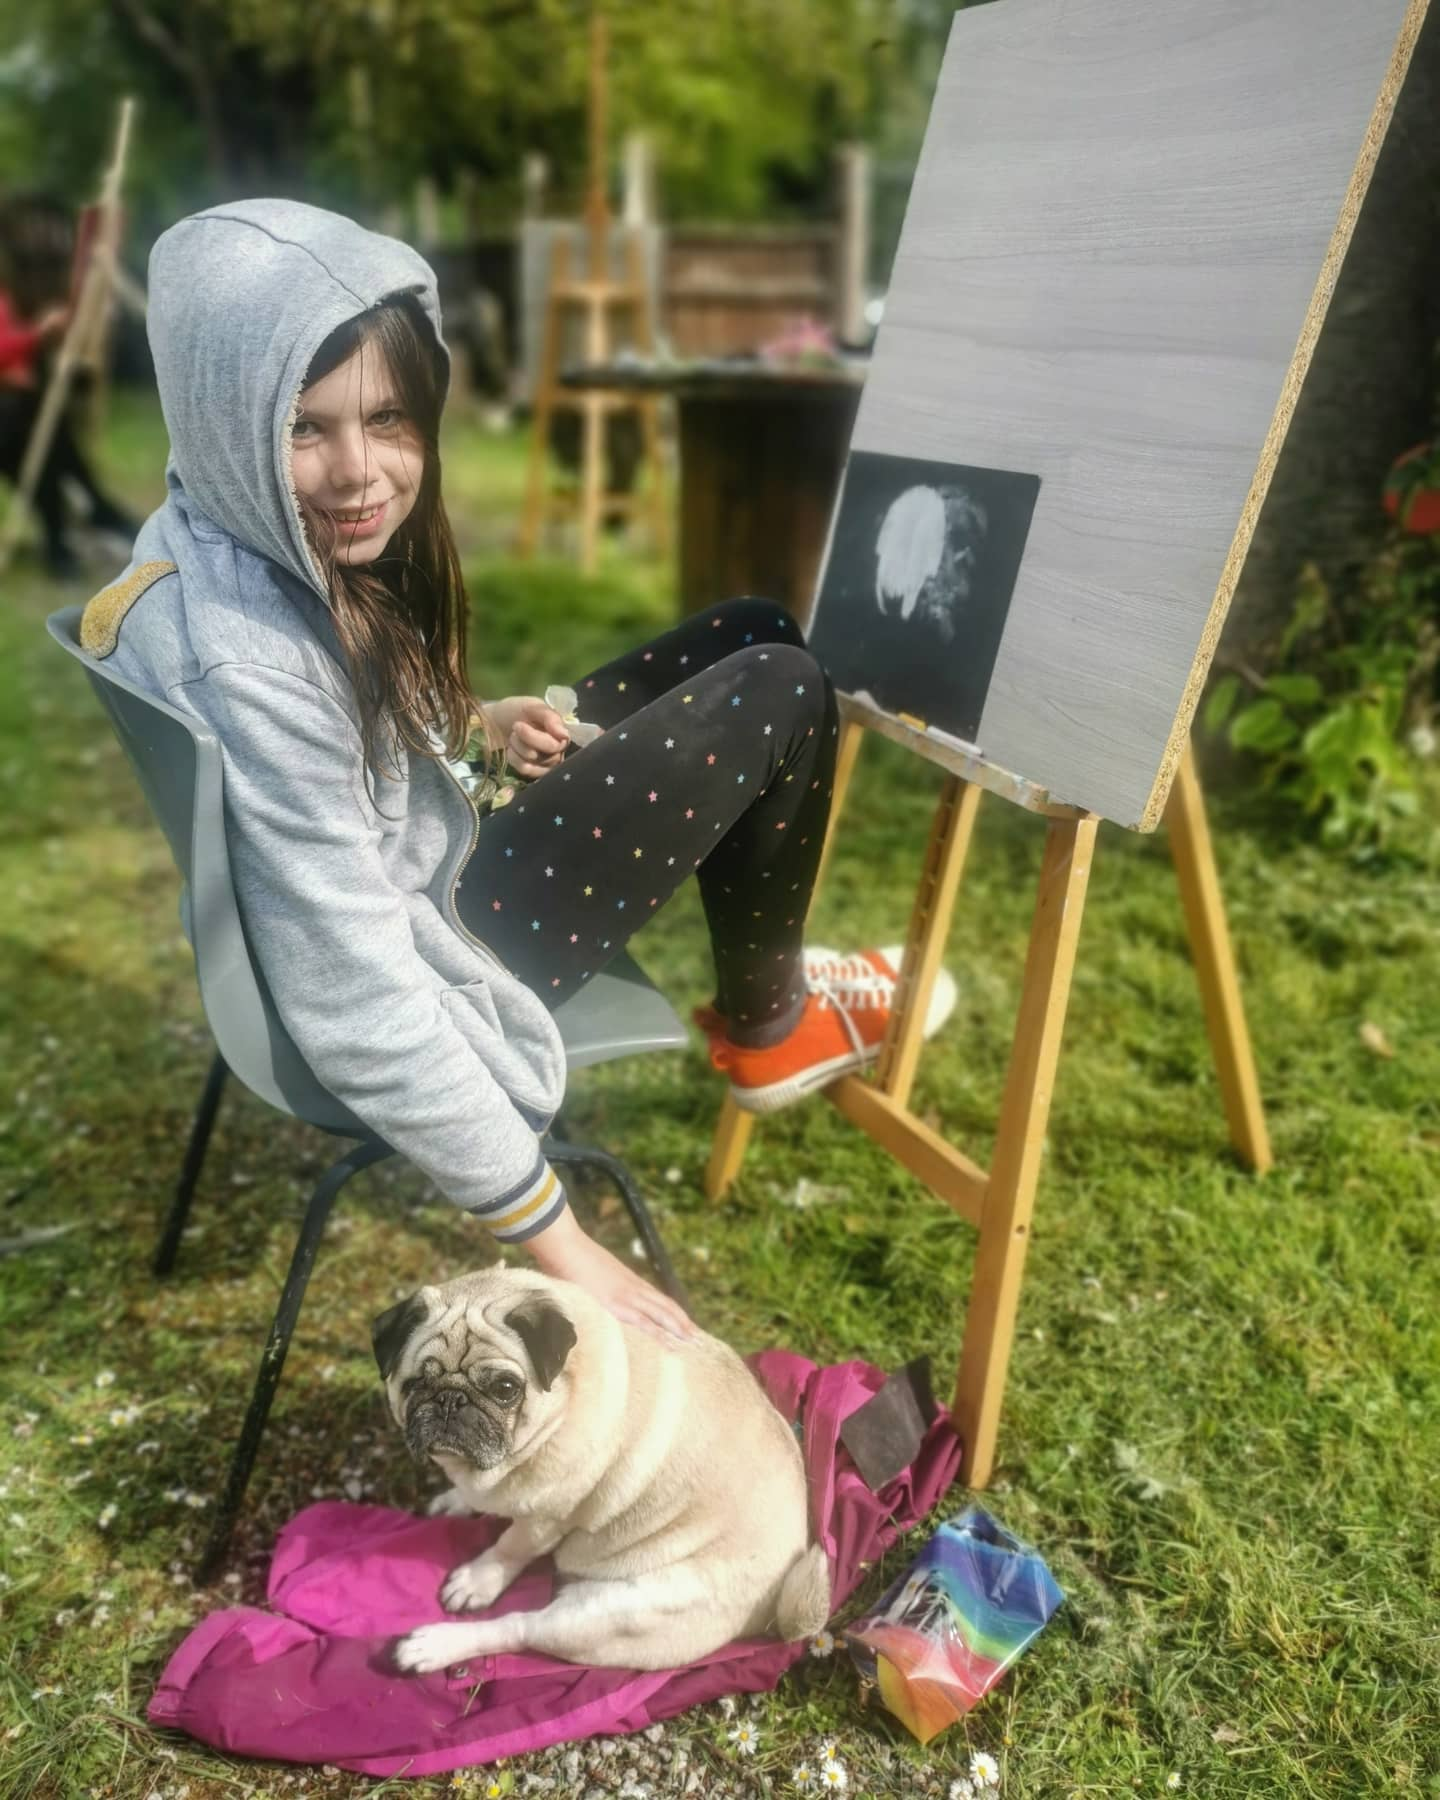 Outdoor drawing class with Molly the pug  #drawingclass #childrensartclass #chester